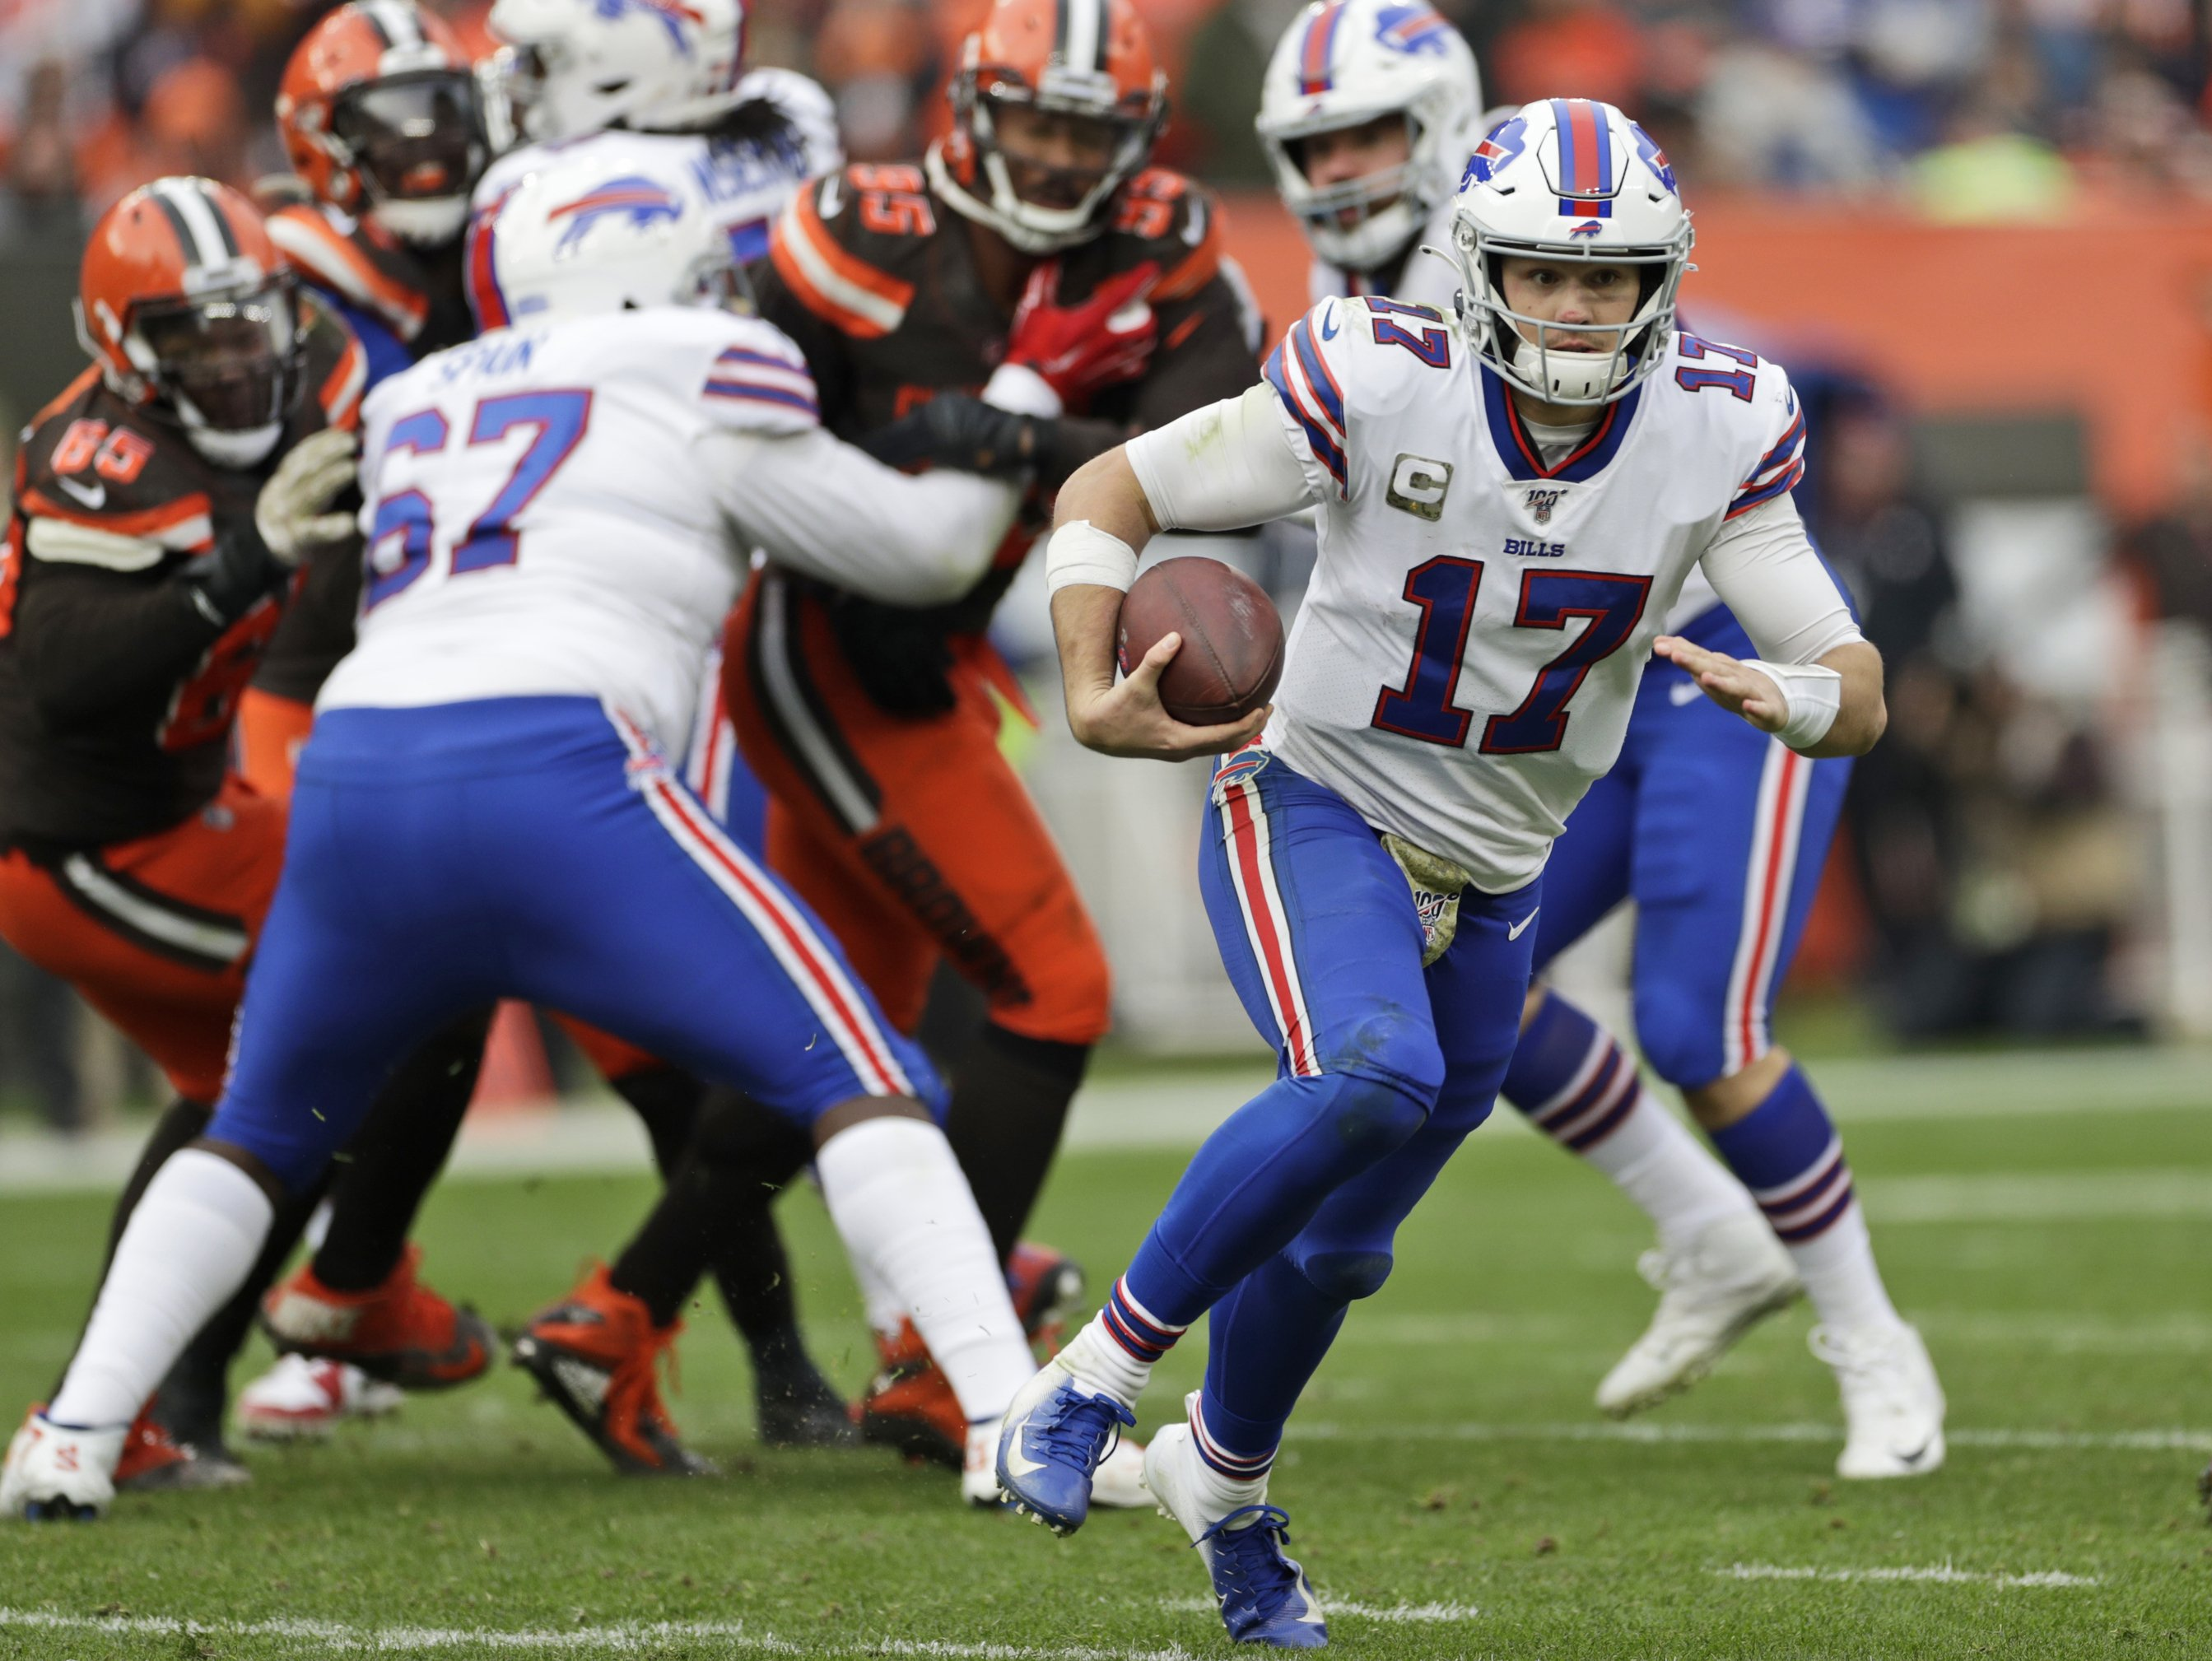 Bills offense showing signs of regressing